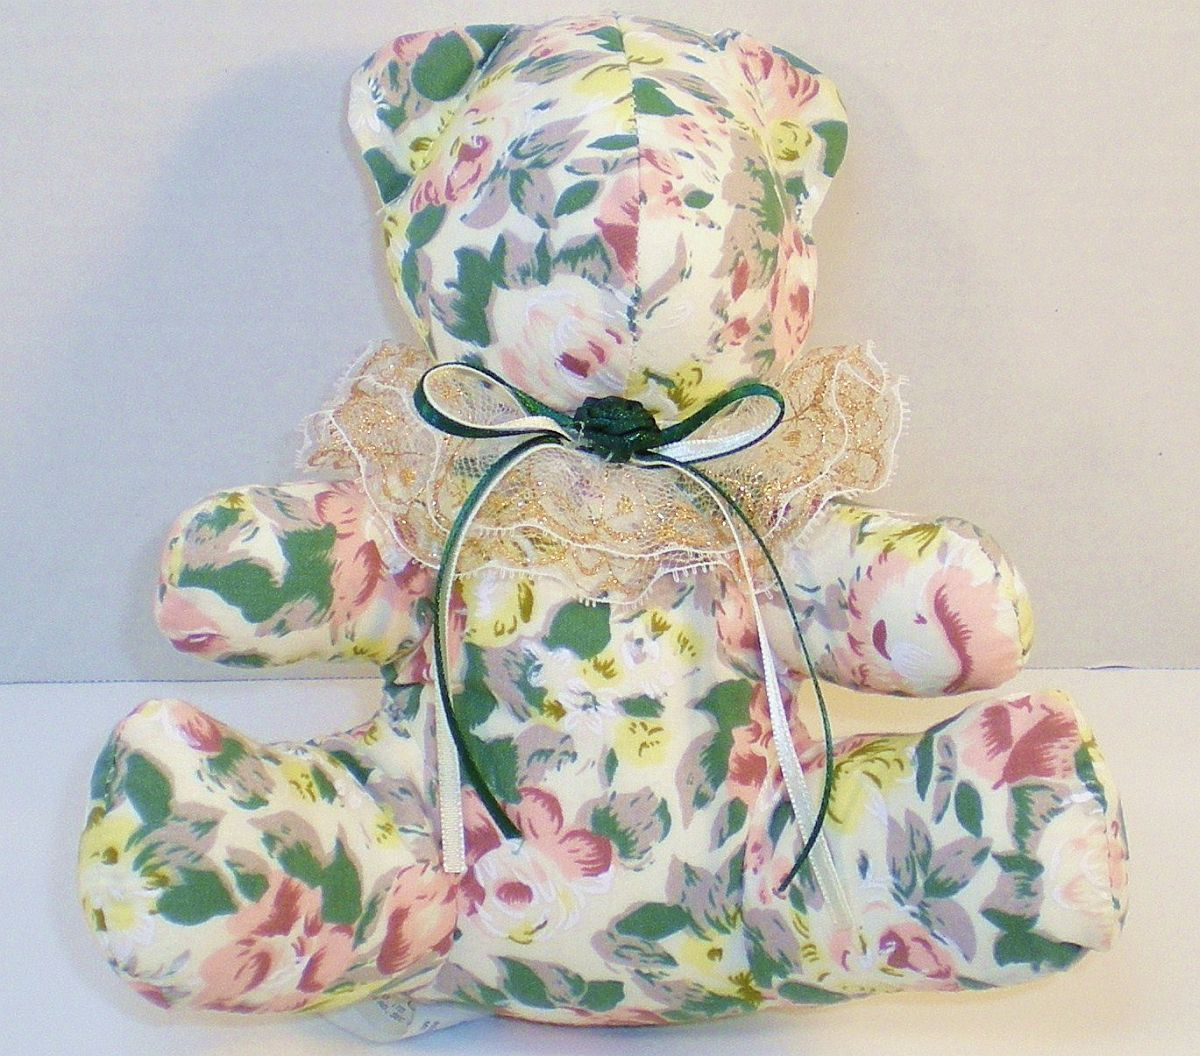 Image 3 of Flower, Floral print chintz fabric stuffed bear, 1992